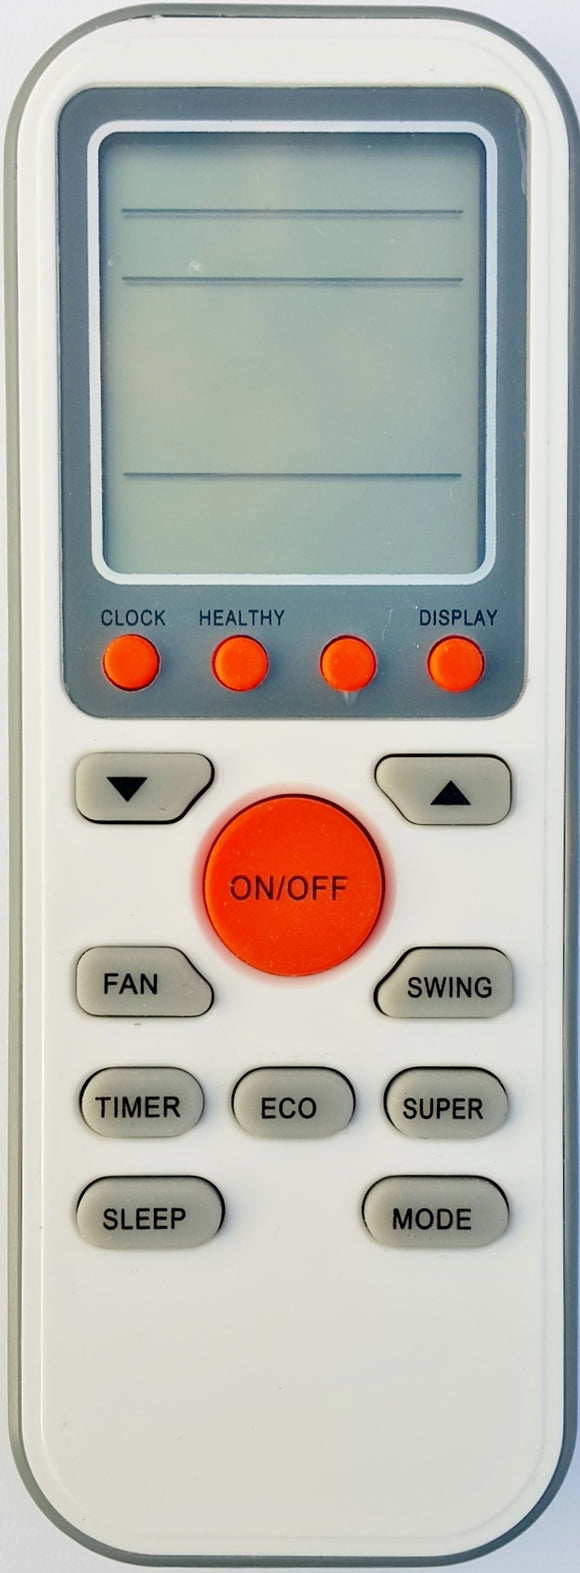 ORIGINAL AKAI AIR CONDITIONER REMOTE CONTROL -  TEM-23CHAAK5   TEM-35CHAAK   TEM-50CHSABR  TEM-70CHSAAK5 - Remote Control Warehouse